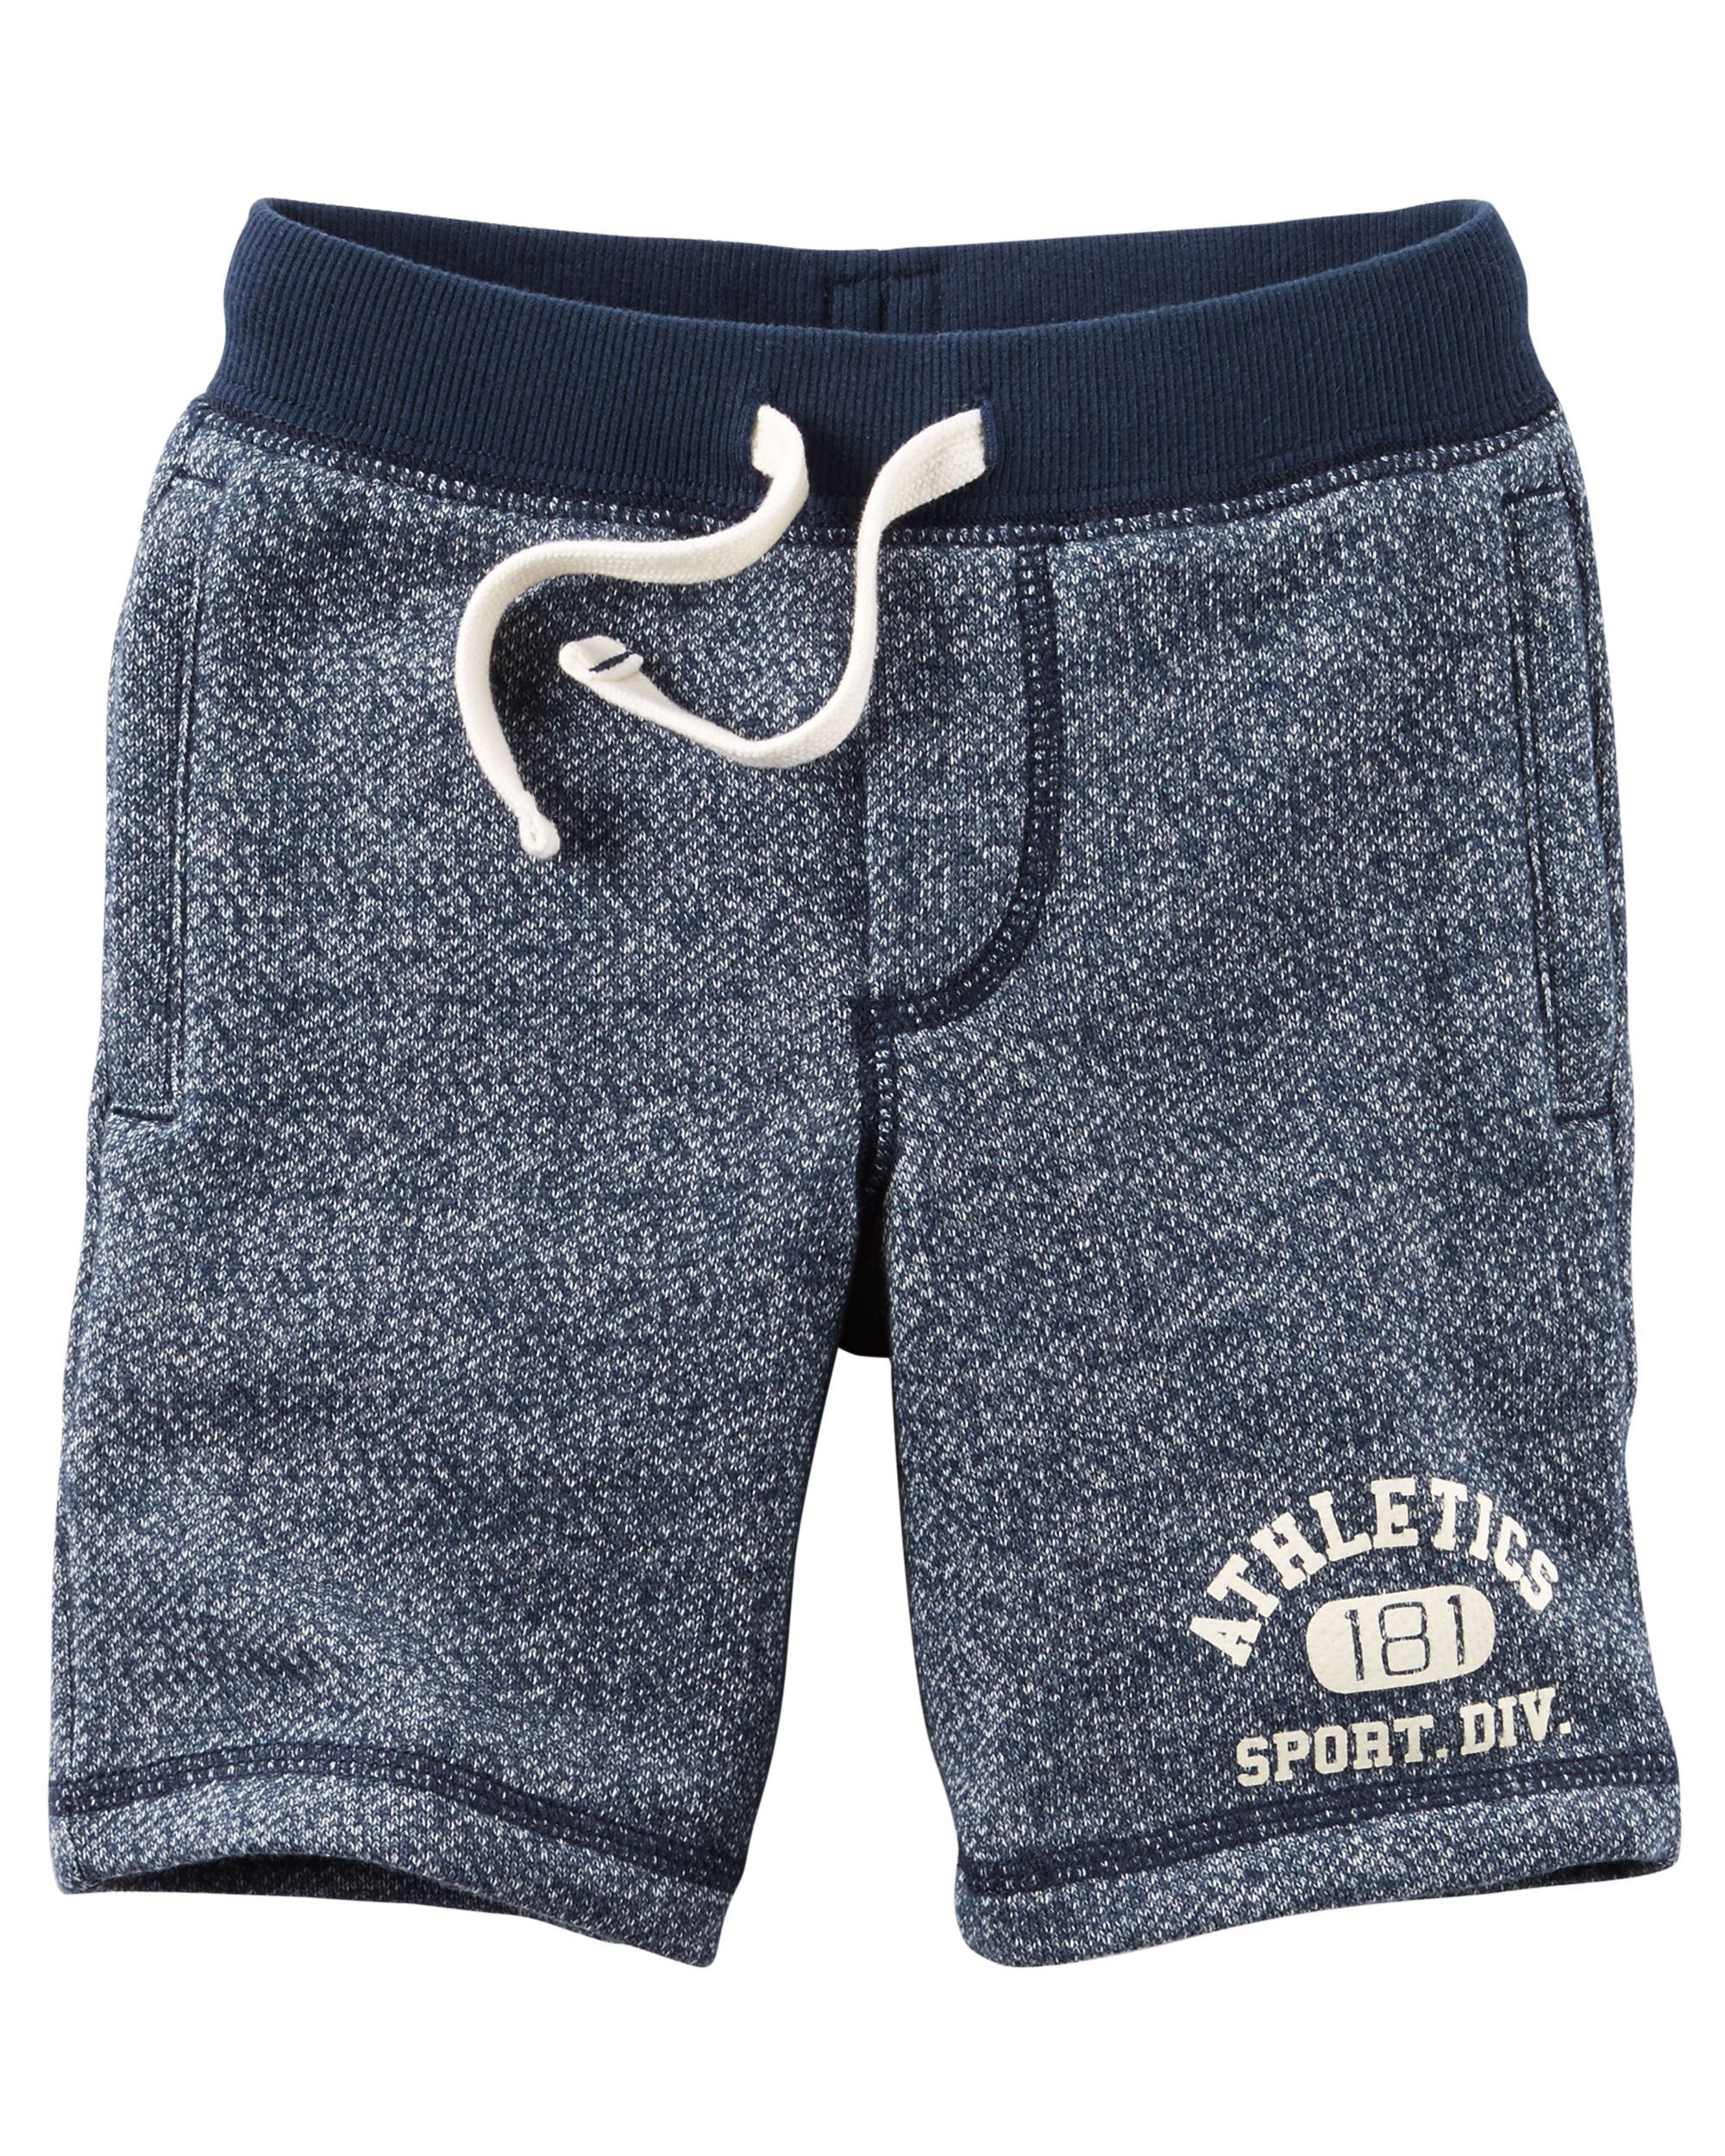 8e40c7a9e8 Toddler Boy Marled French Terry Active Shorts